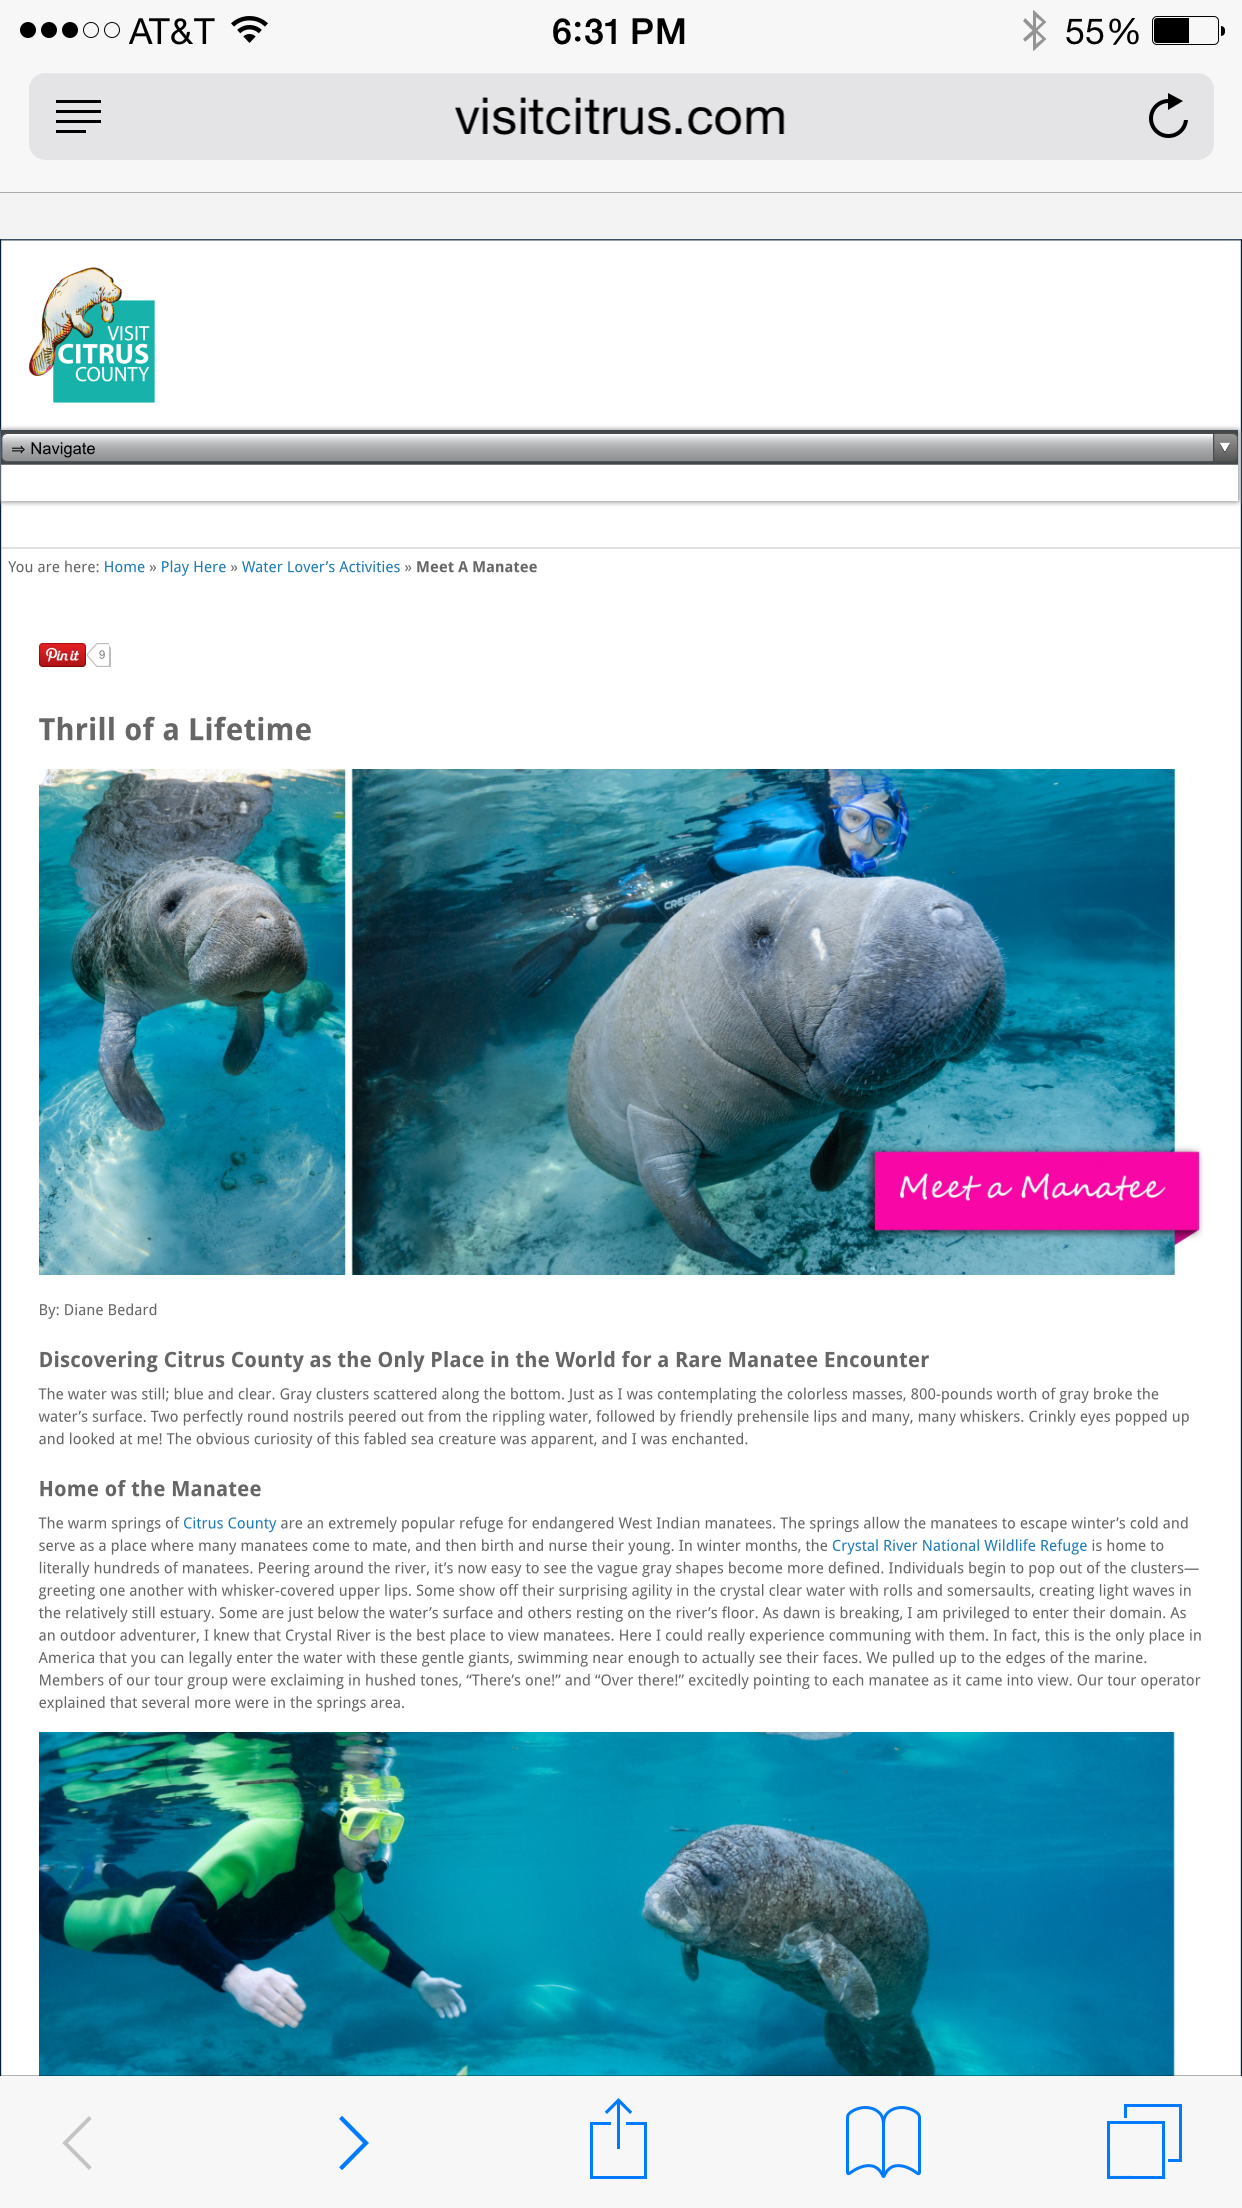 VisitCitrus.com, screenshot, meet a manatee, thrill of a lifetime, photos by Carol Grant,